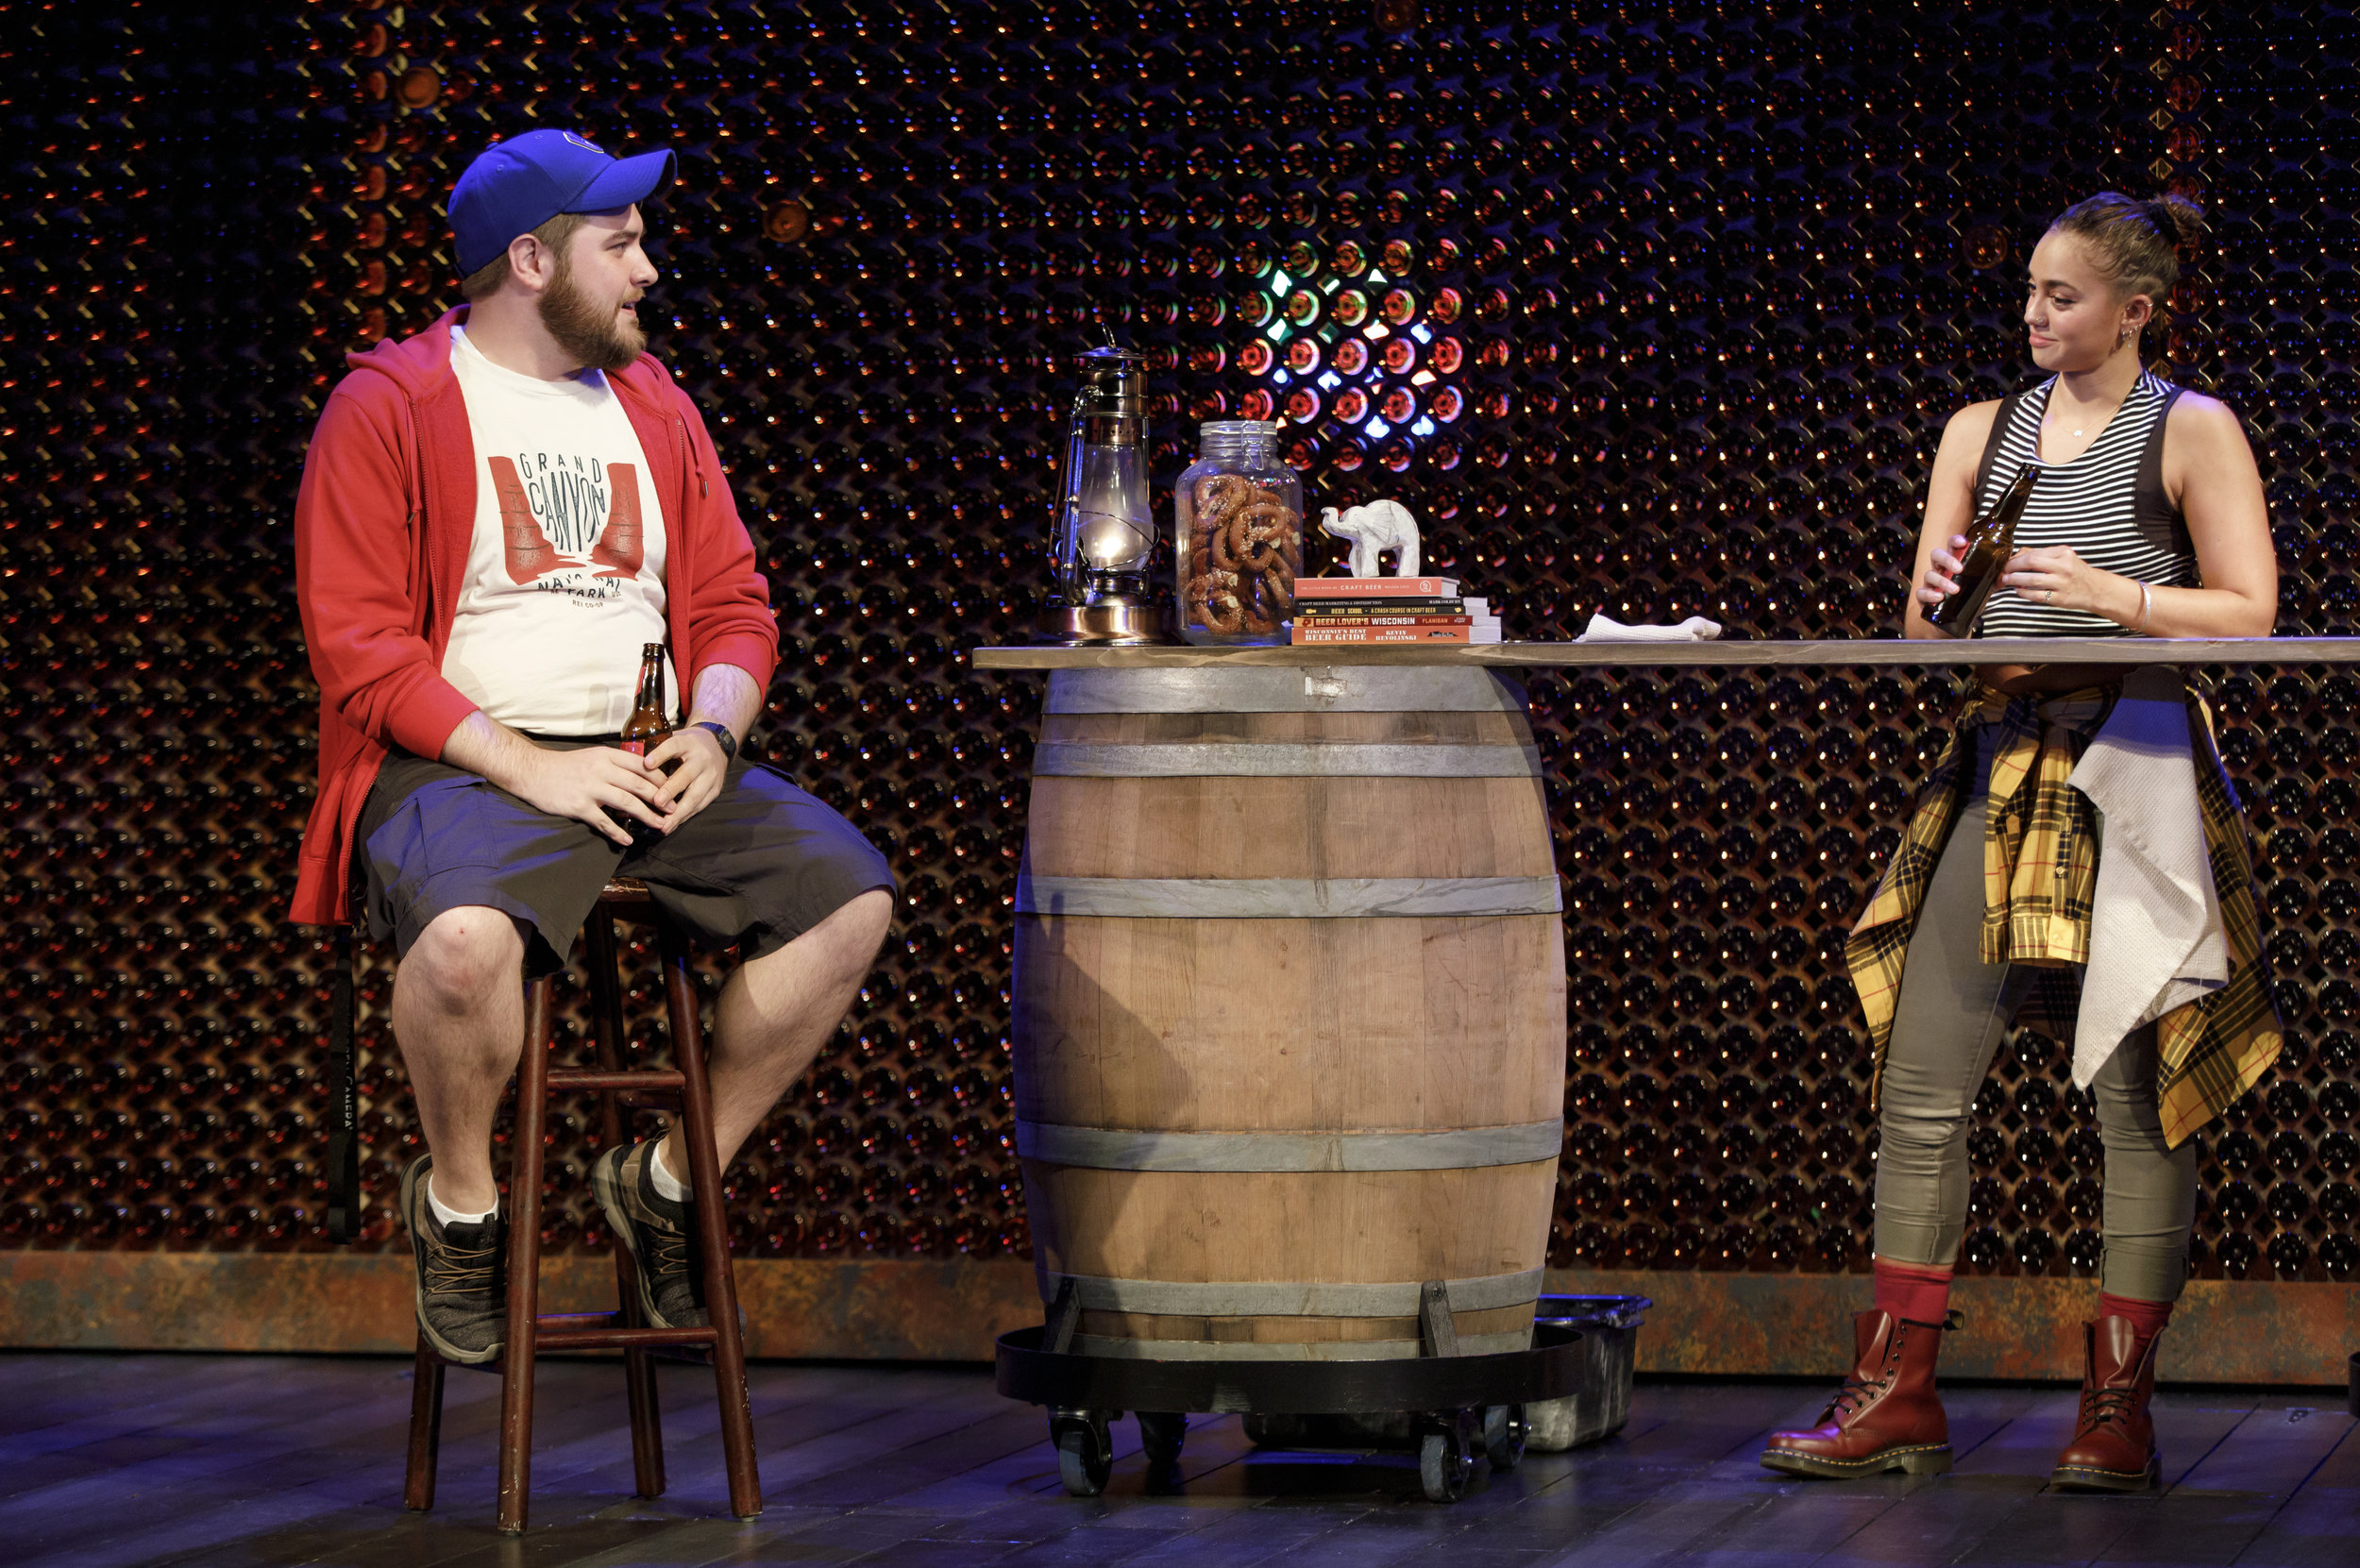 """Nate Miller and Shazi Raja in """"India Pale Ale"""". Photo Credit: Joan Marcus."""